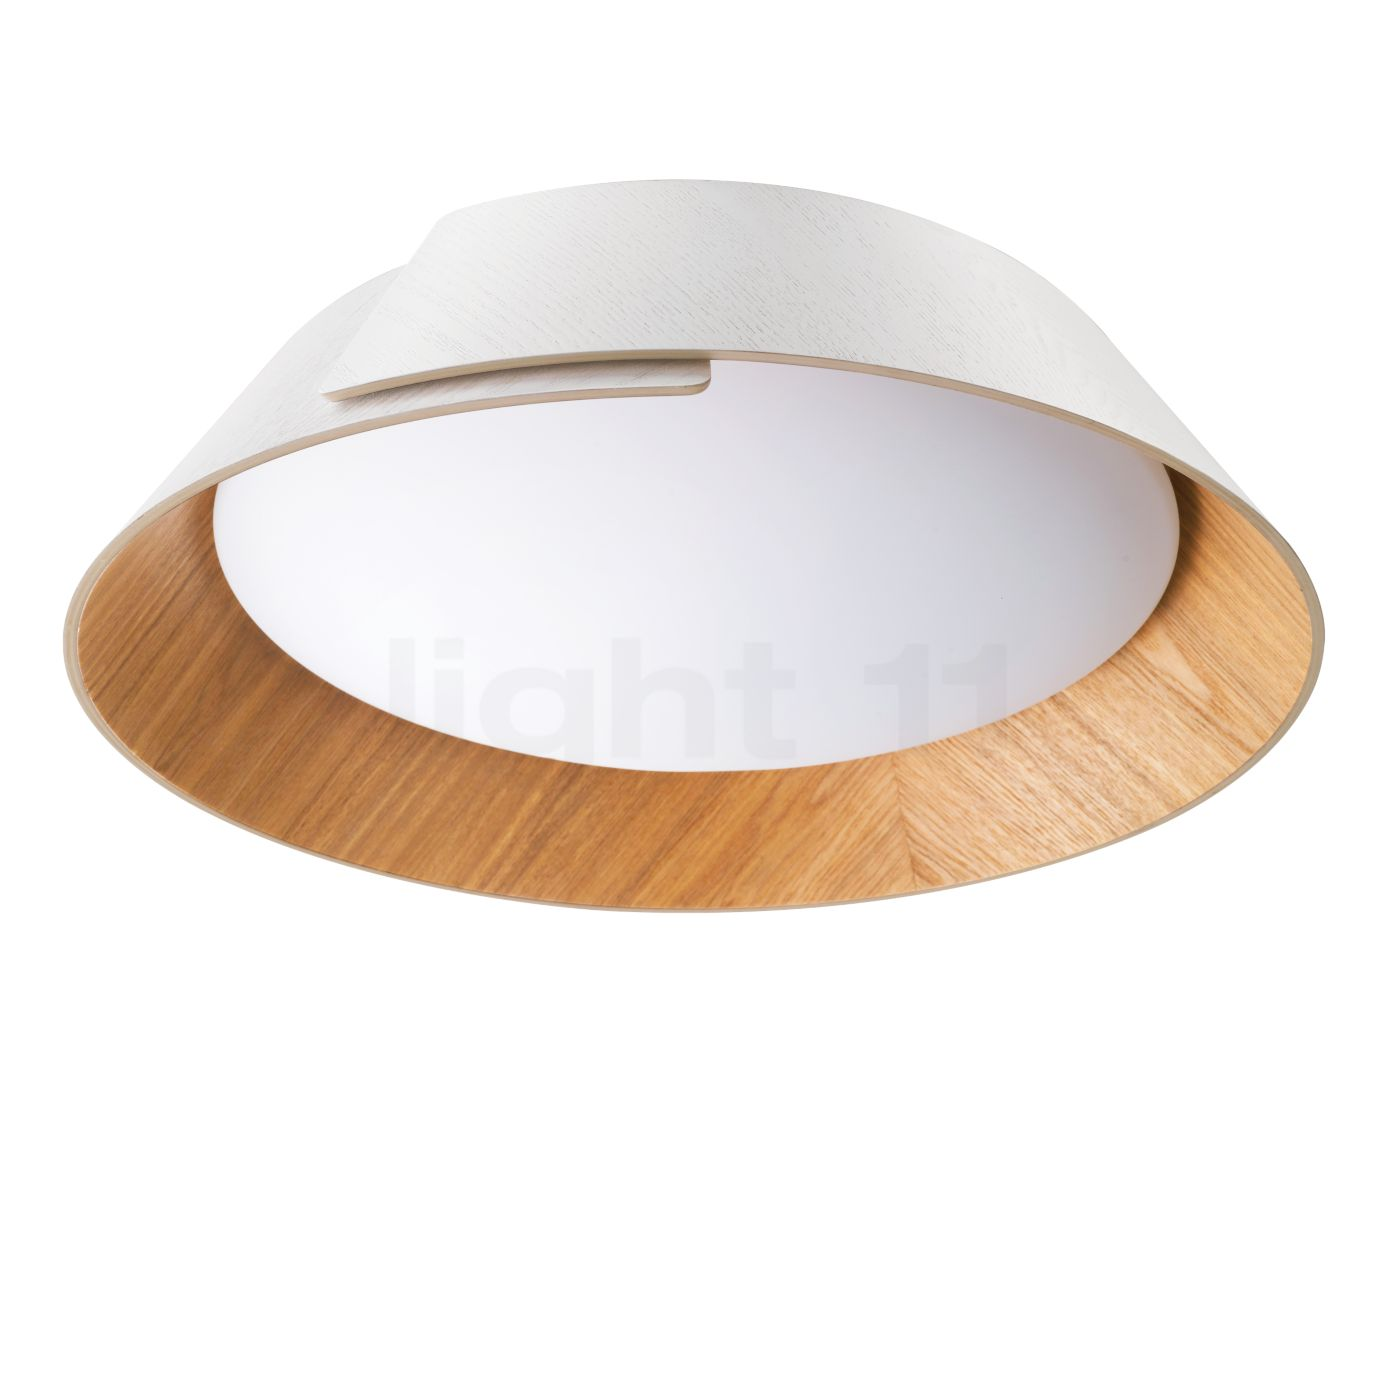 lighting for halls. Philips InStyle Nonagon Ceiling Light LED White Lighting For Halls H